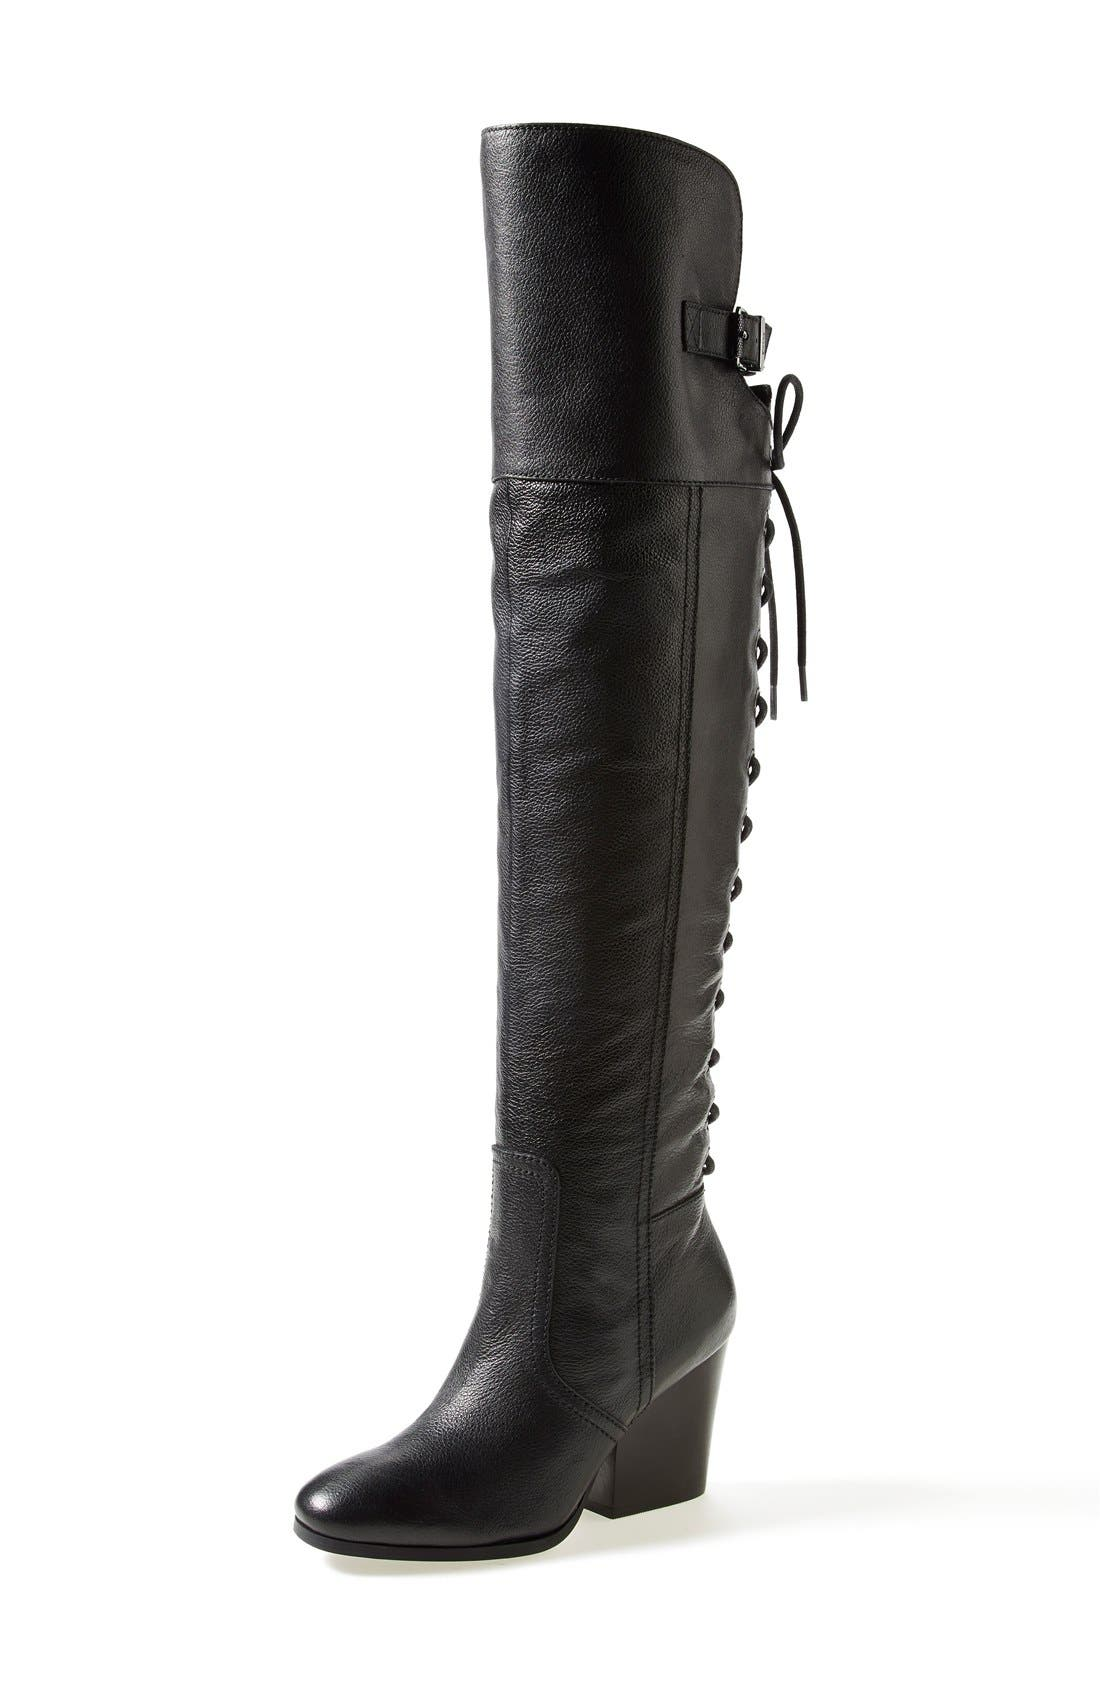 Main Image - Circus by Sam Edelman 'Tatum' Over The Knee Boot (Women)